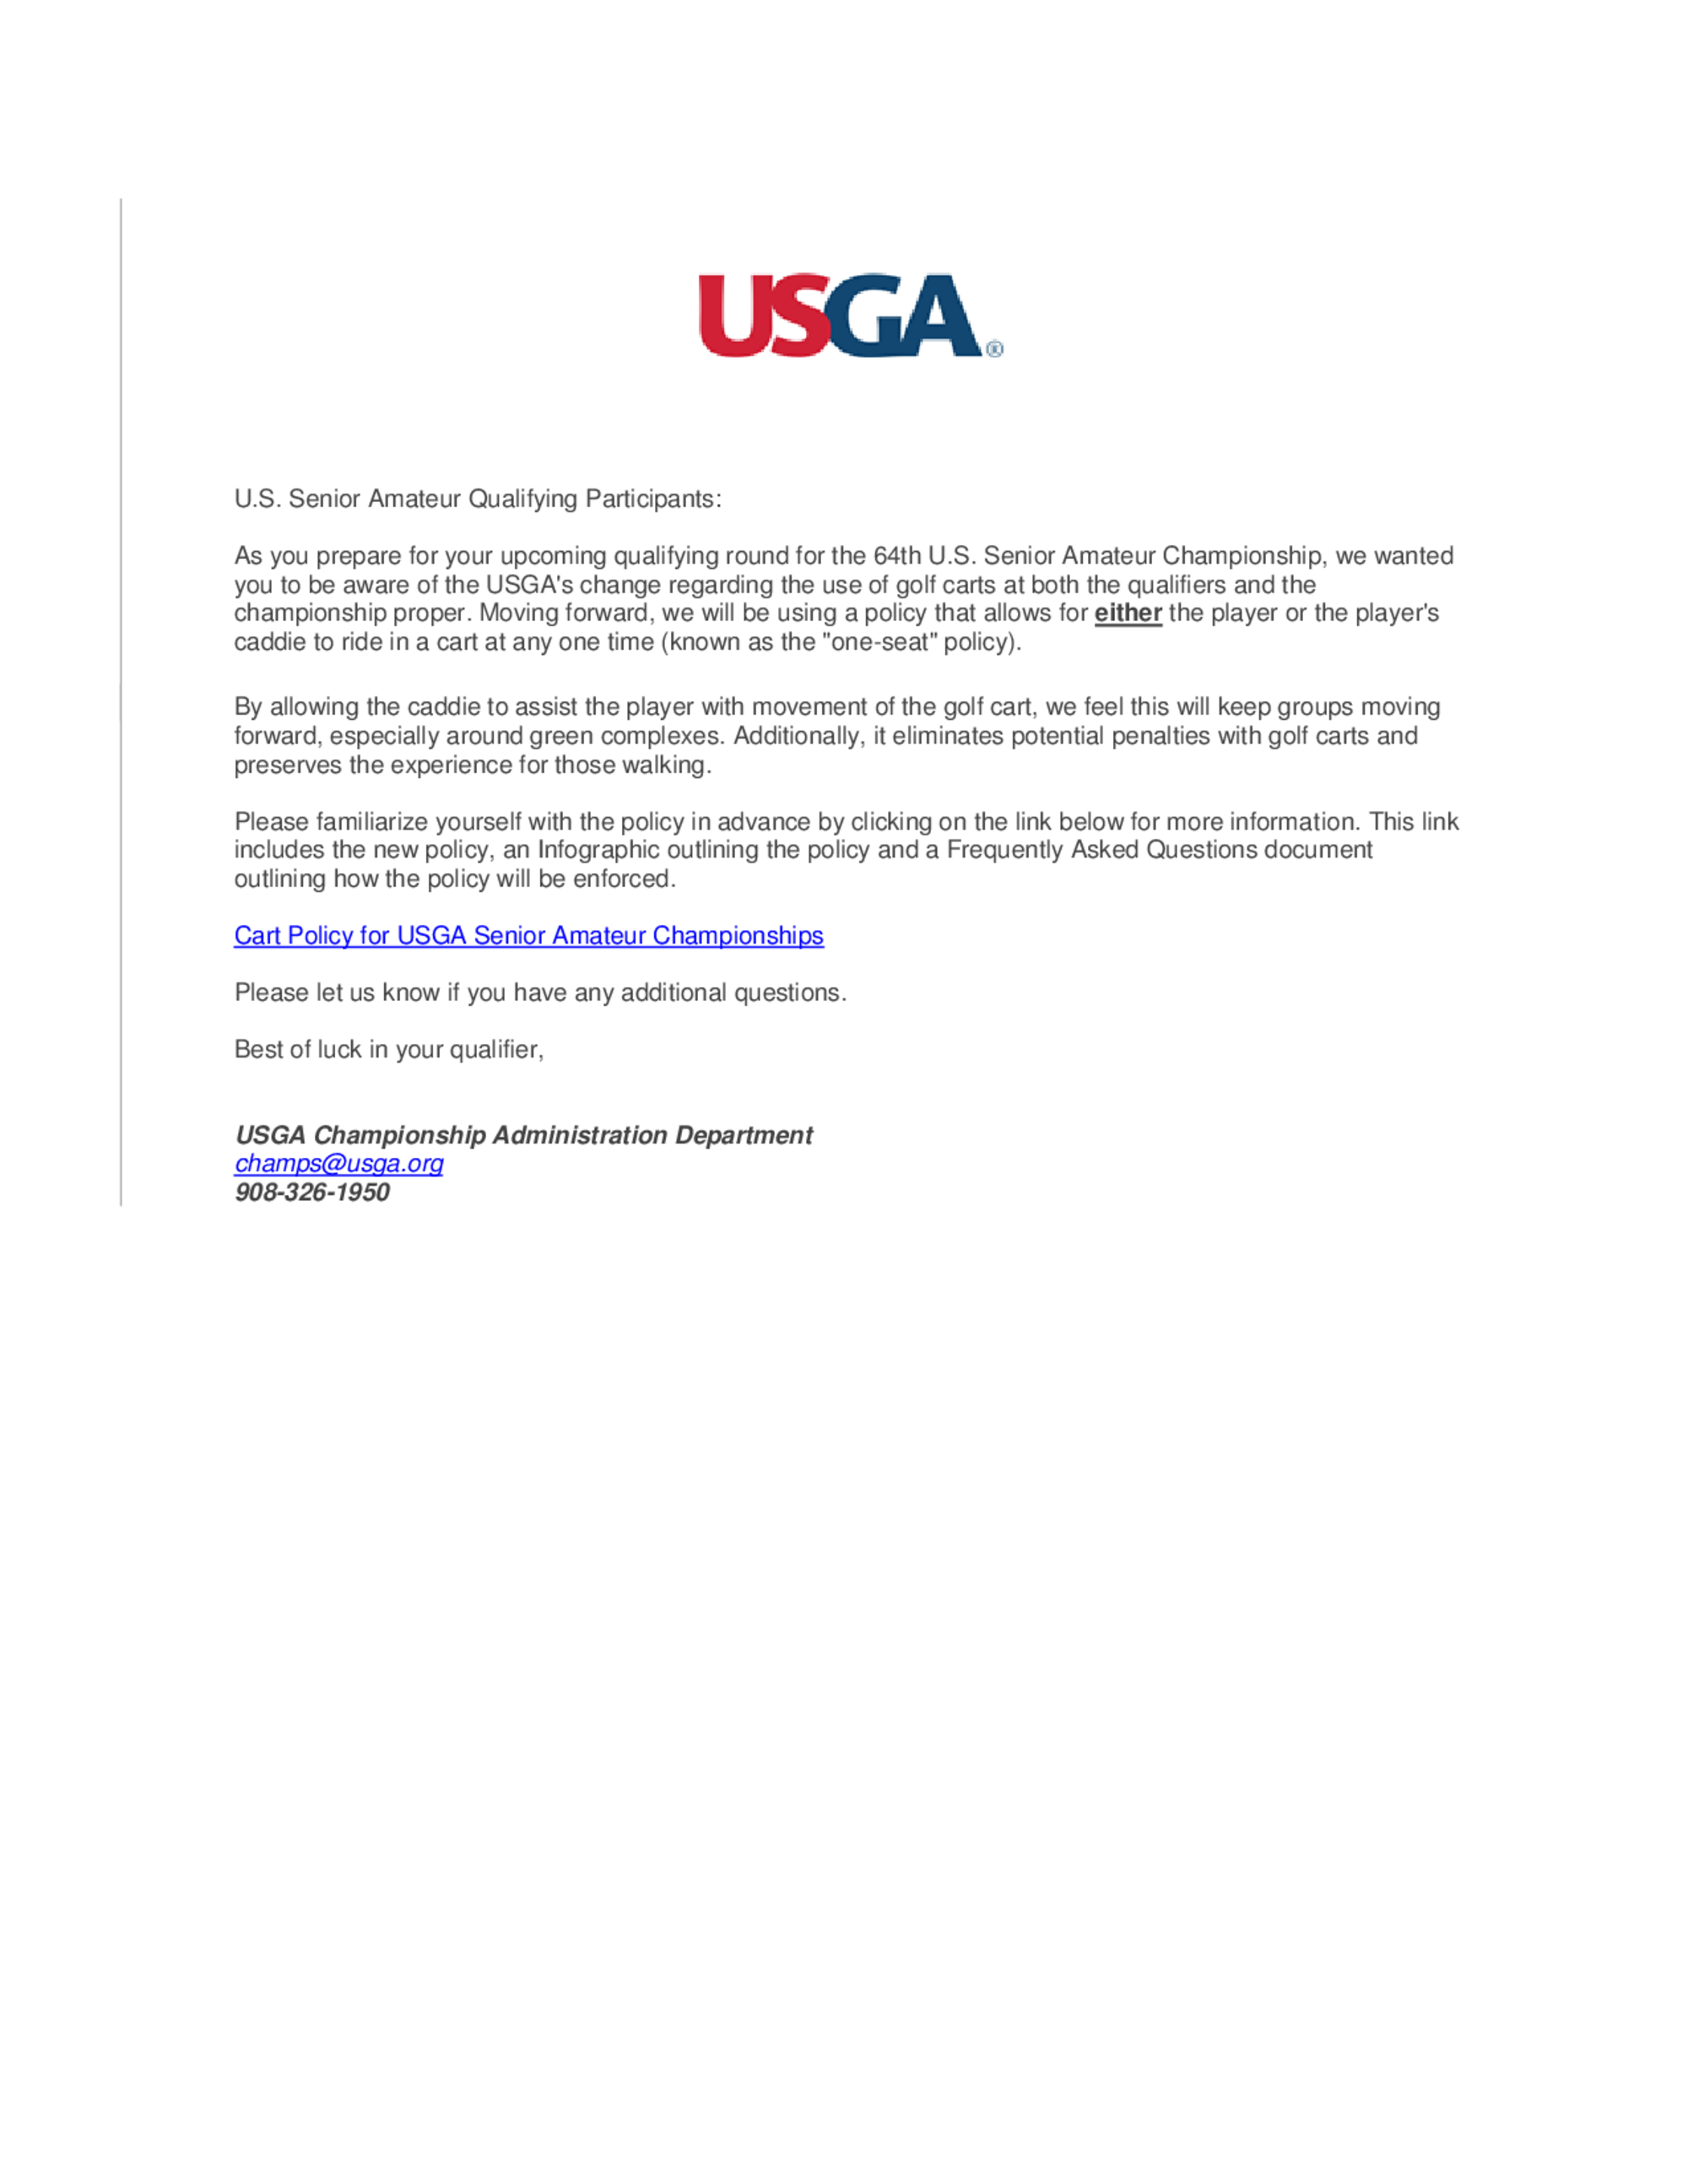 Cart policy letter 1